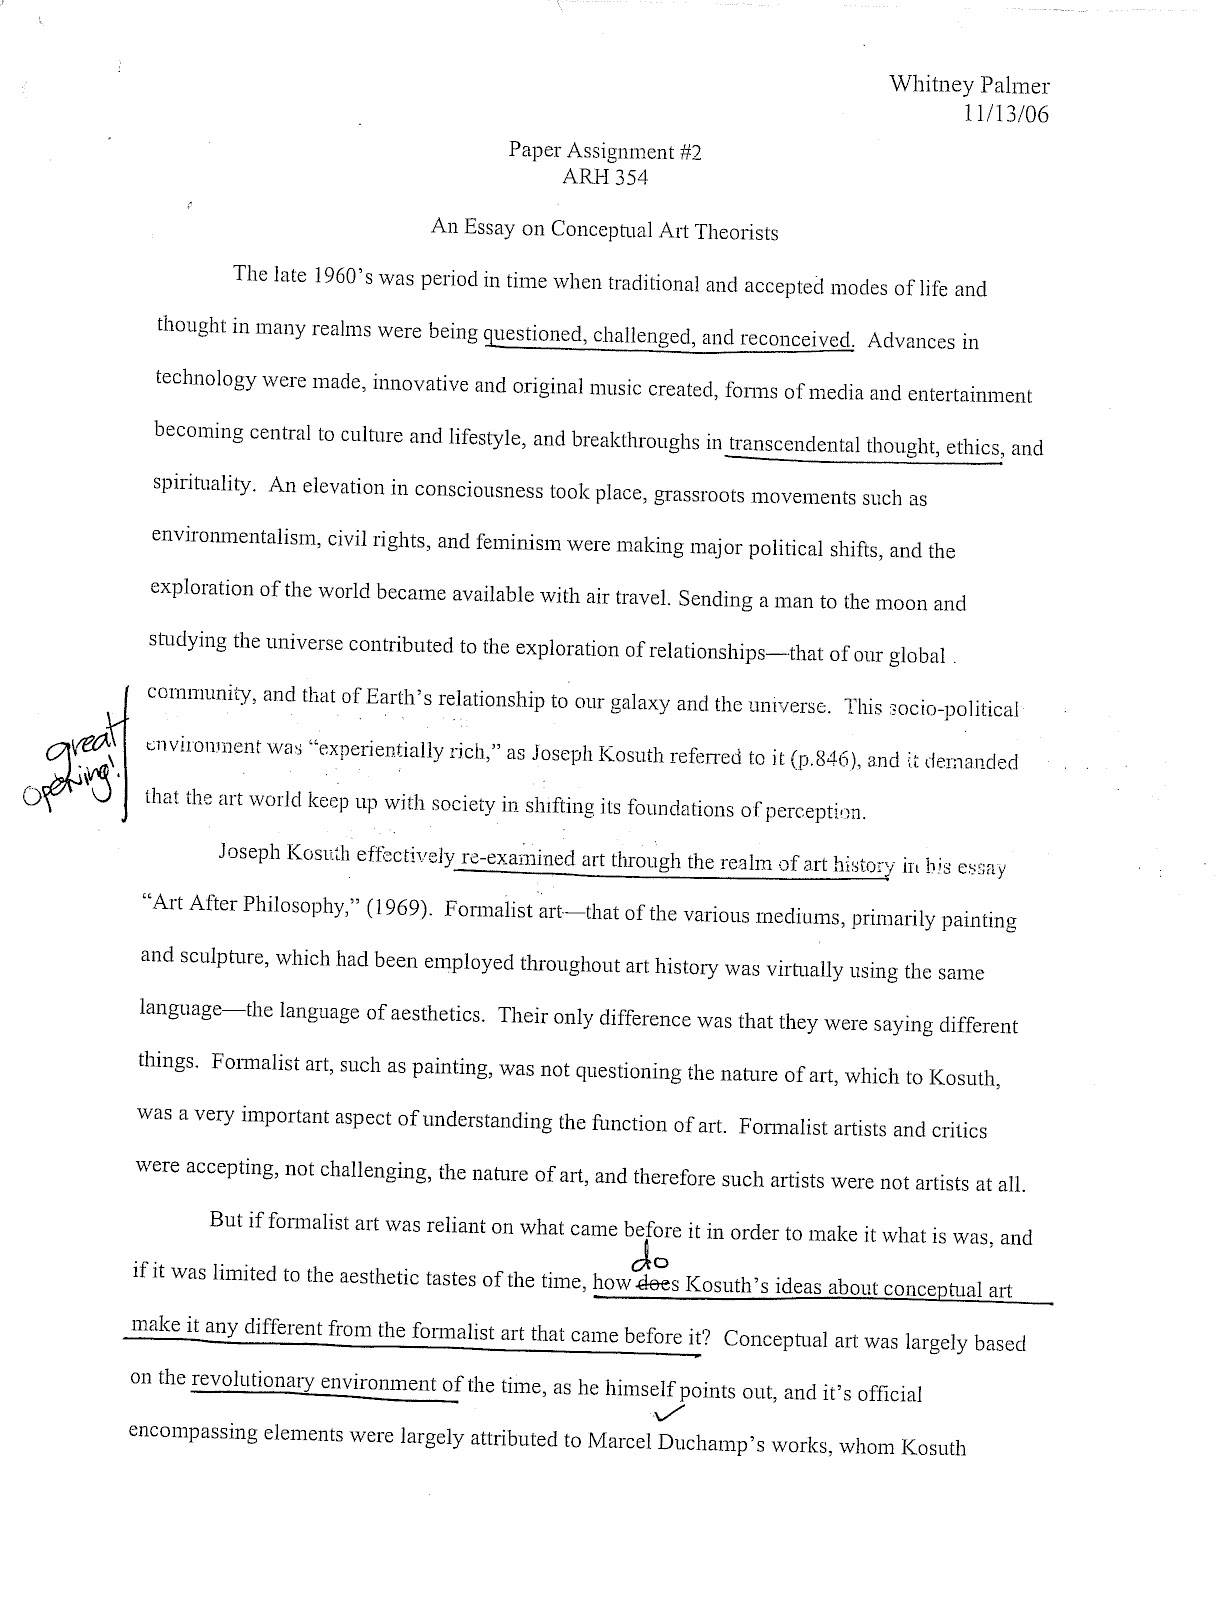 essay on art art critique example essay r art essay art history  art history essays art history essays compucenter the aim of this essay from art history fall